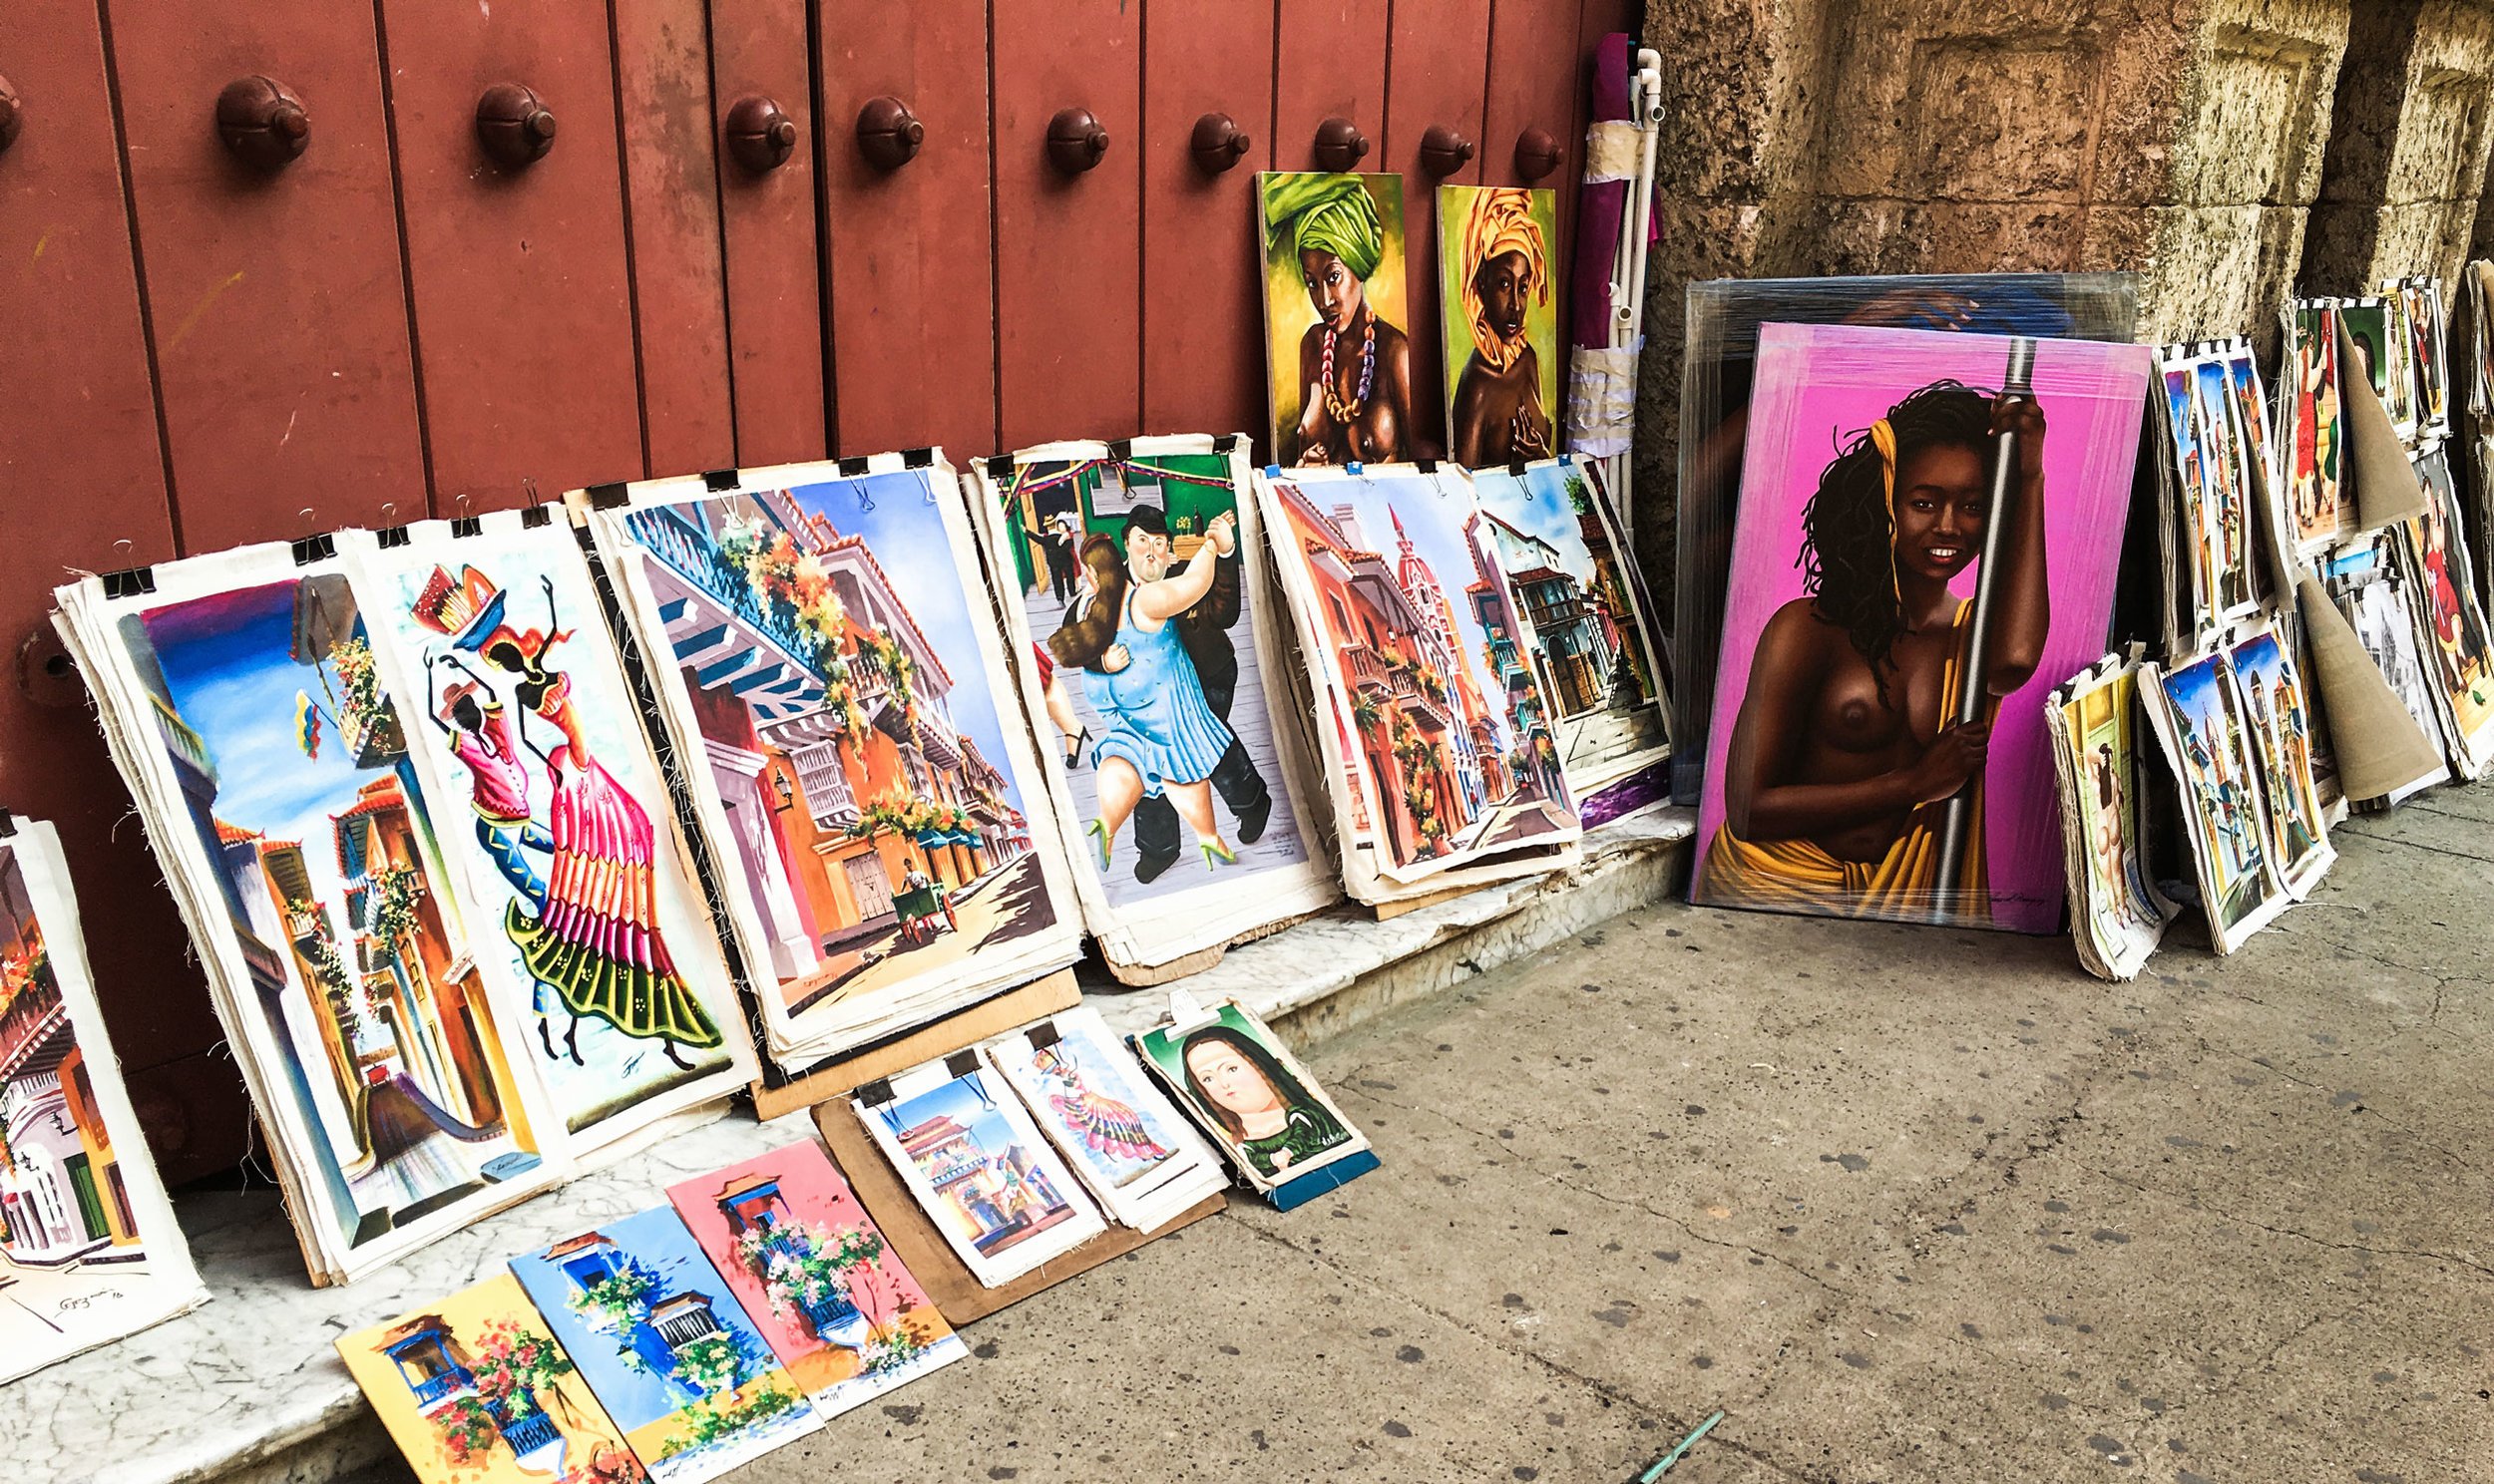 cartagena-colombia-wander-south-old-town-street-vendor-art.jpg